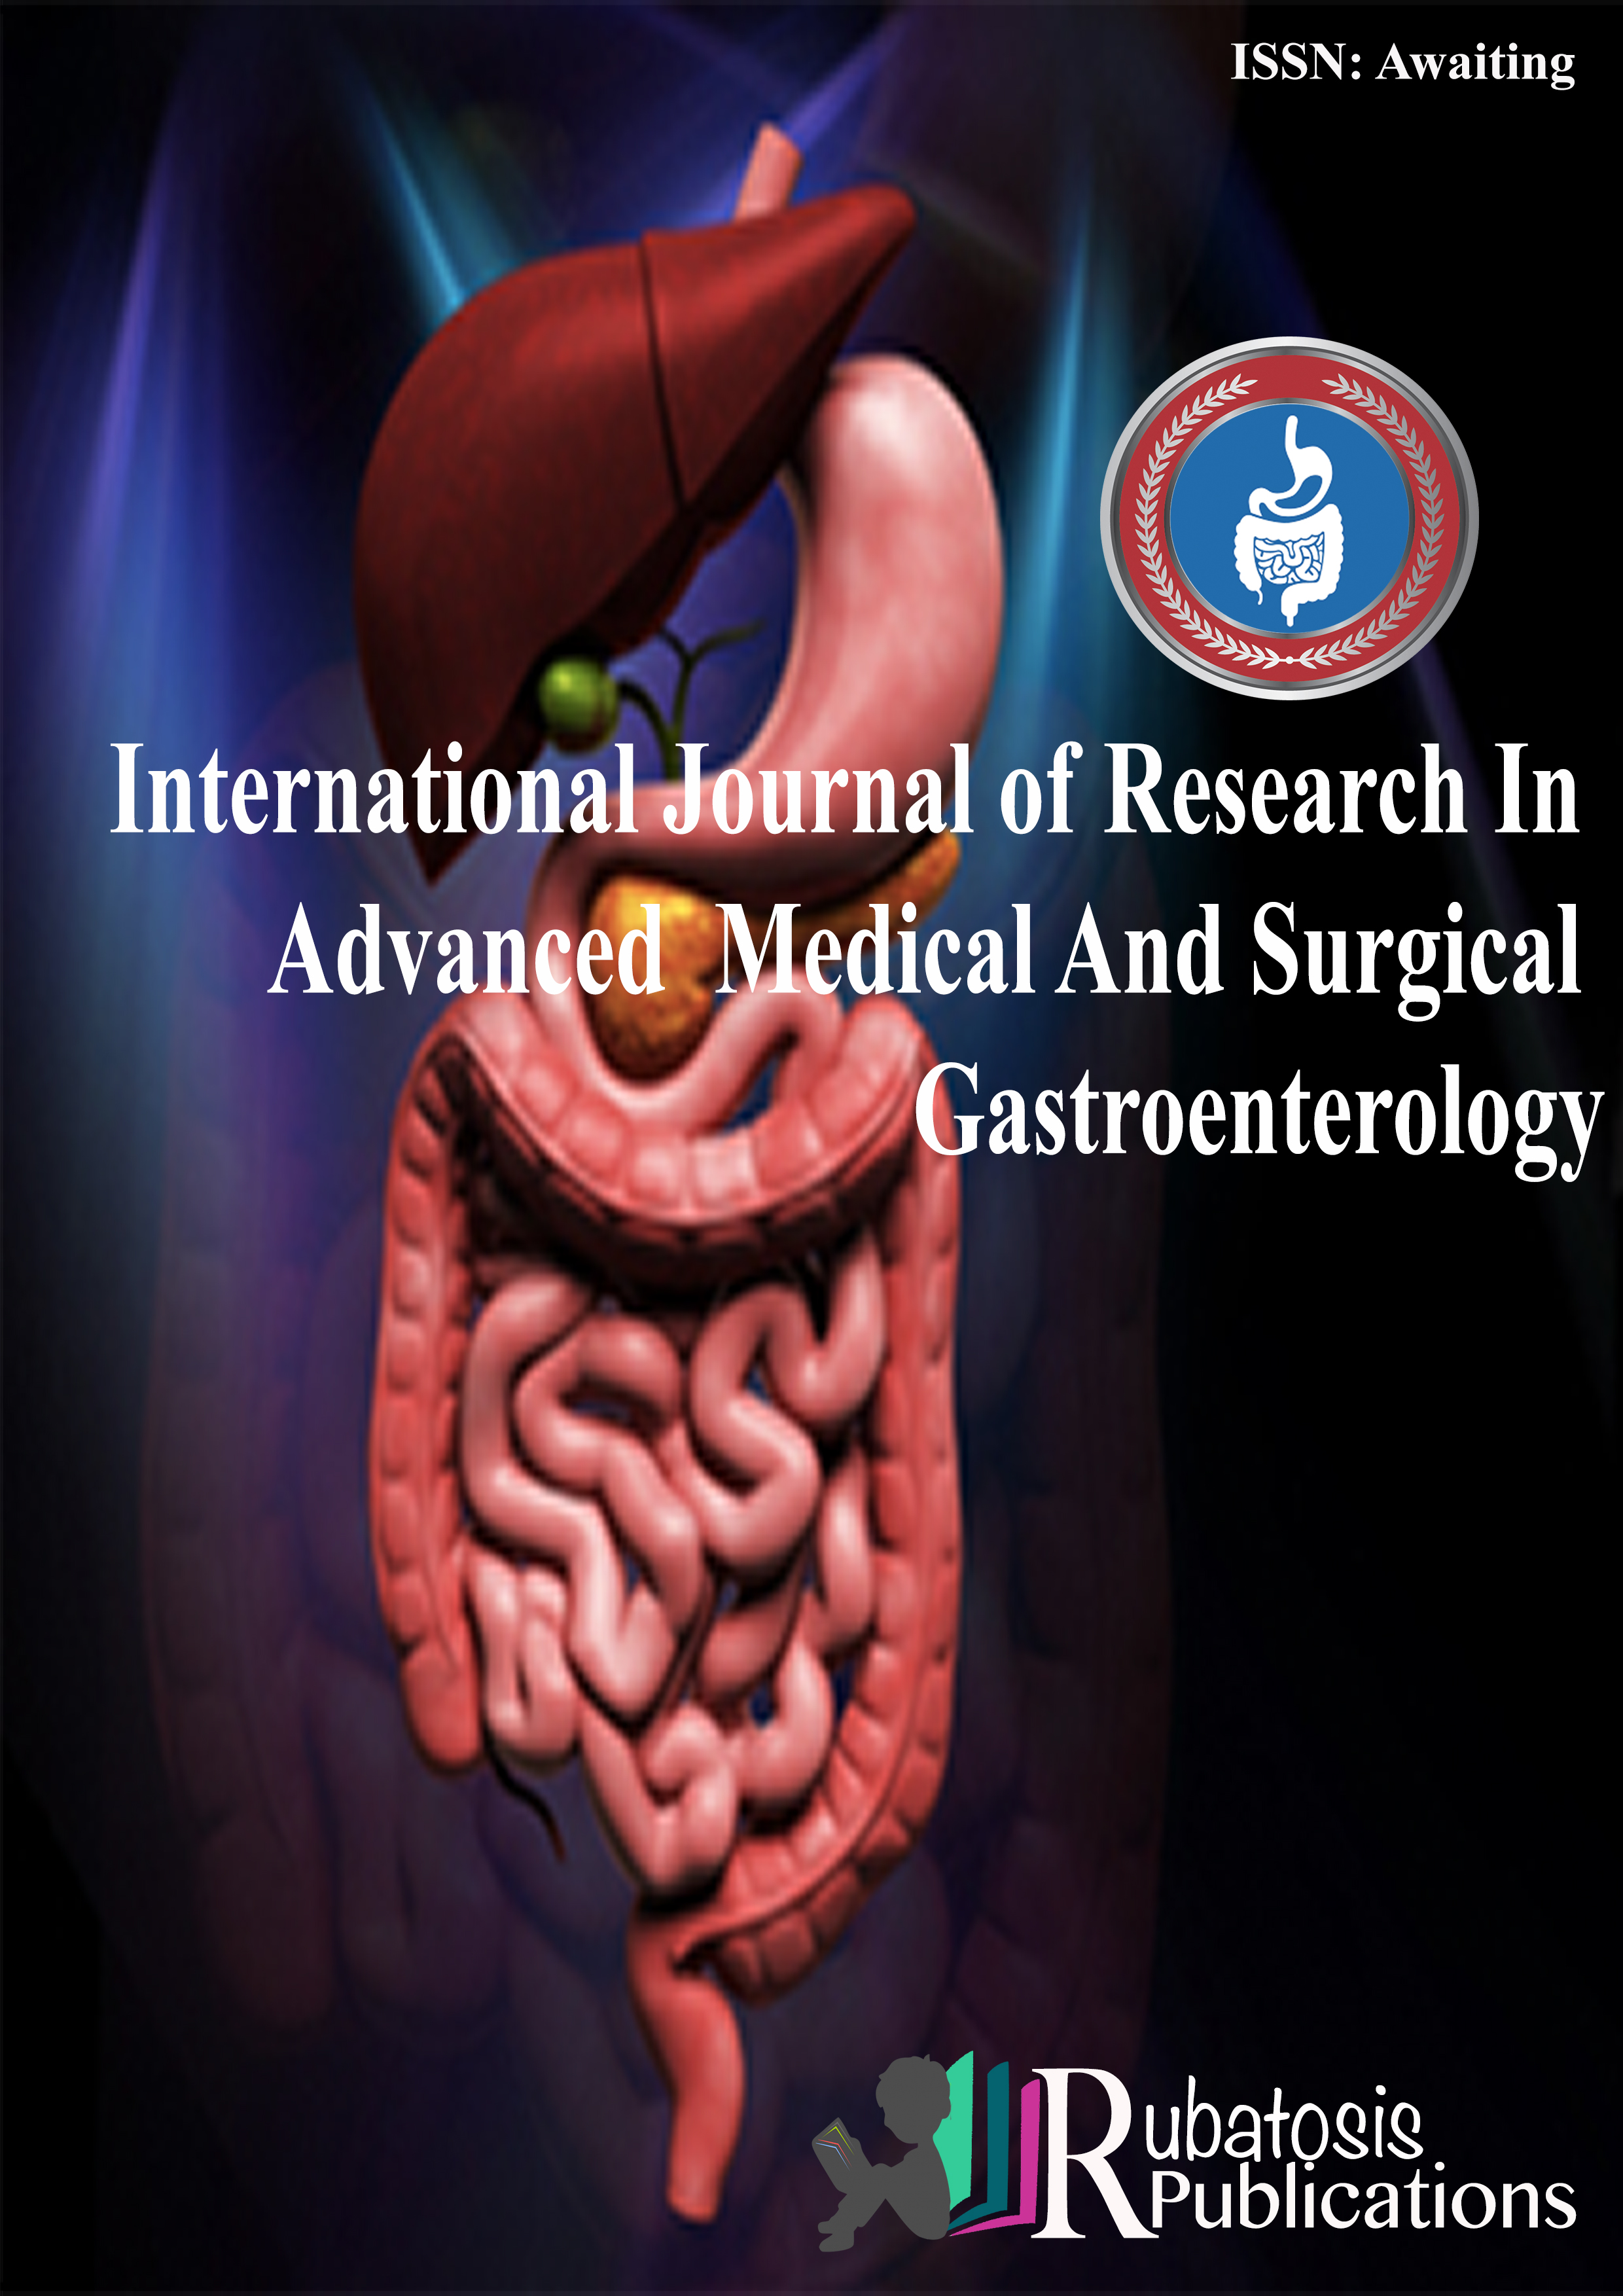 International Journal of Research In Advanced Medical And Surgical Gastroenterology